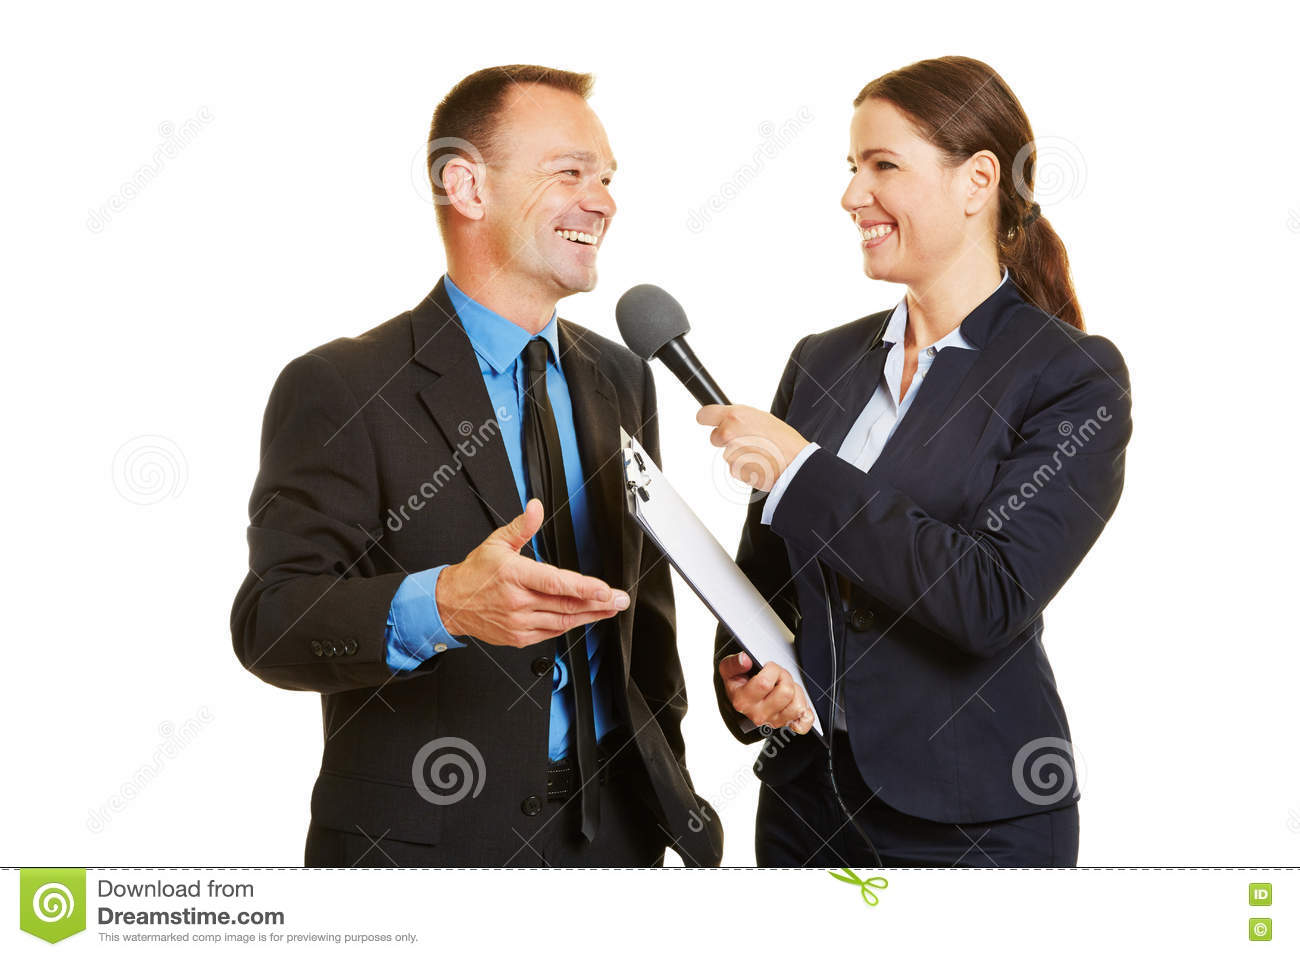 CEO of business company giving interview to the media